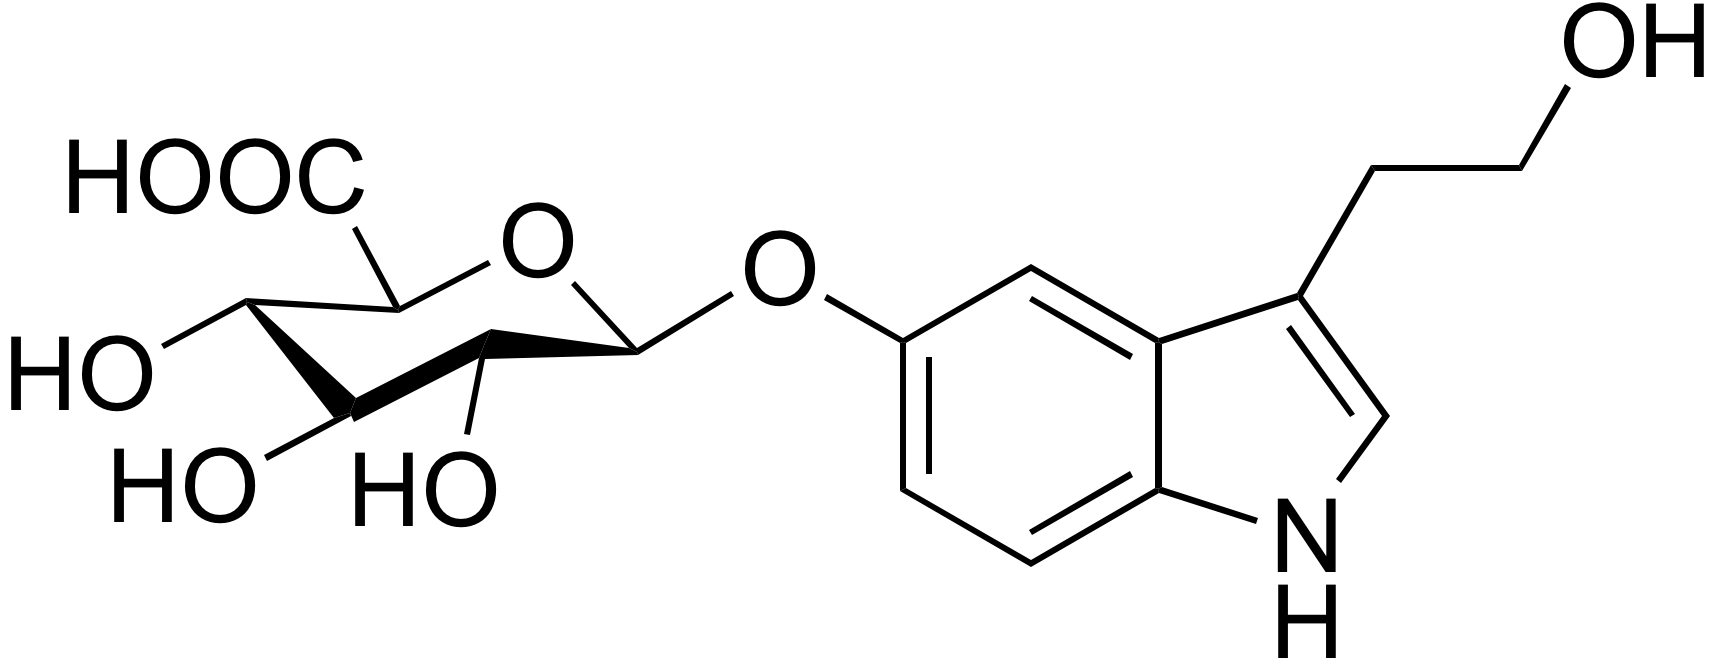 5-Hydroxytryptophol glucuronide